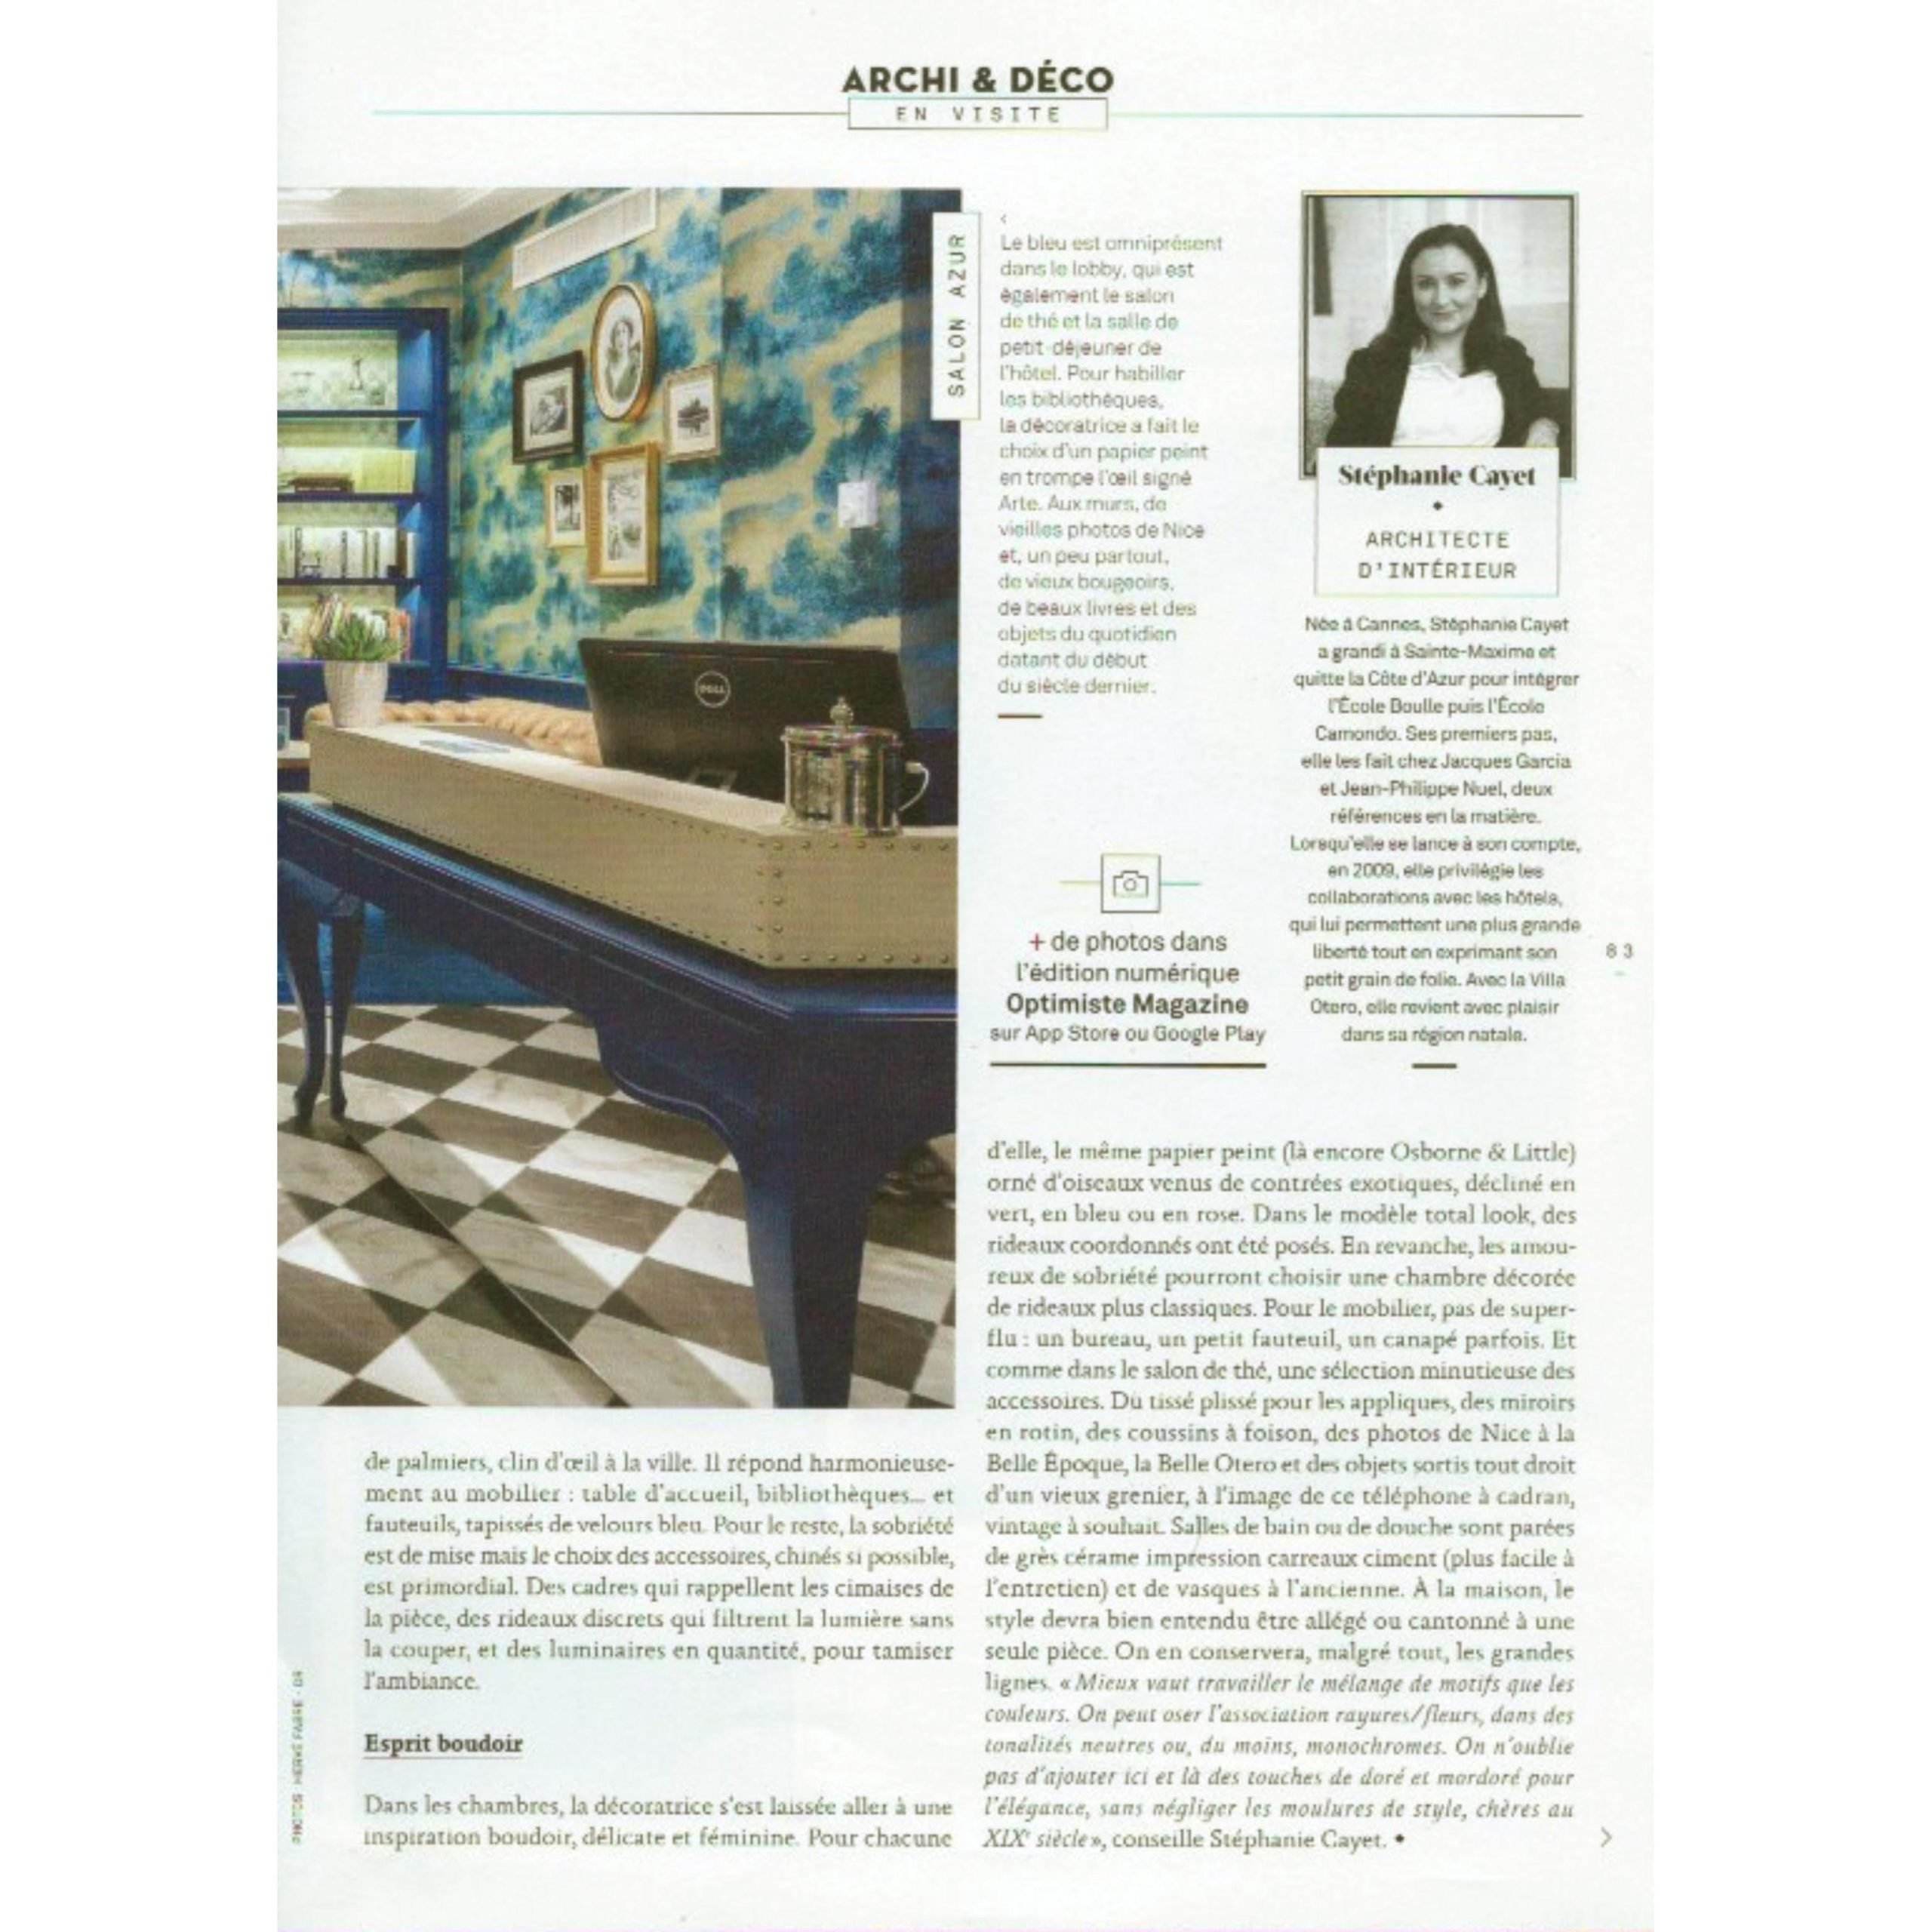 OPTIMISTE MAGAZINE Article HOTEL 4 etoiles stephanie cayet architecture interieure design